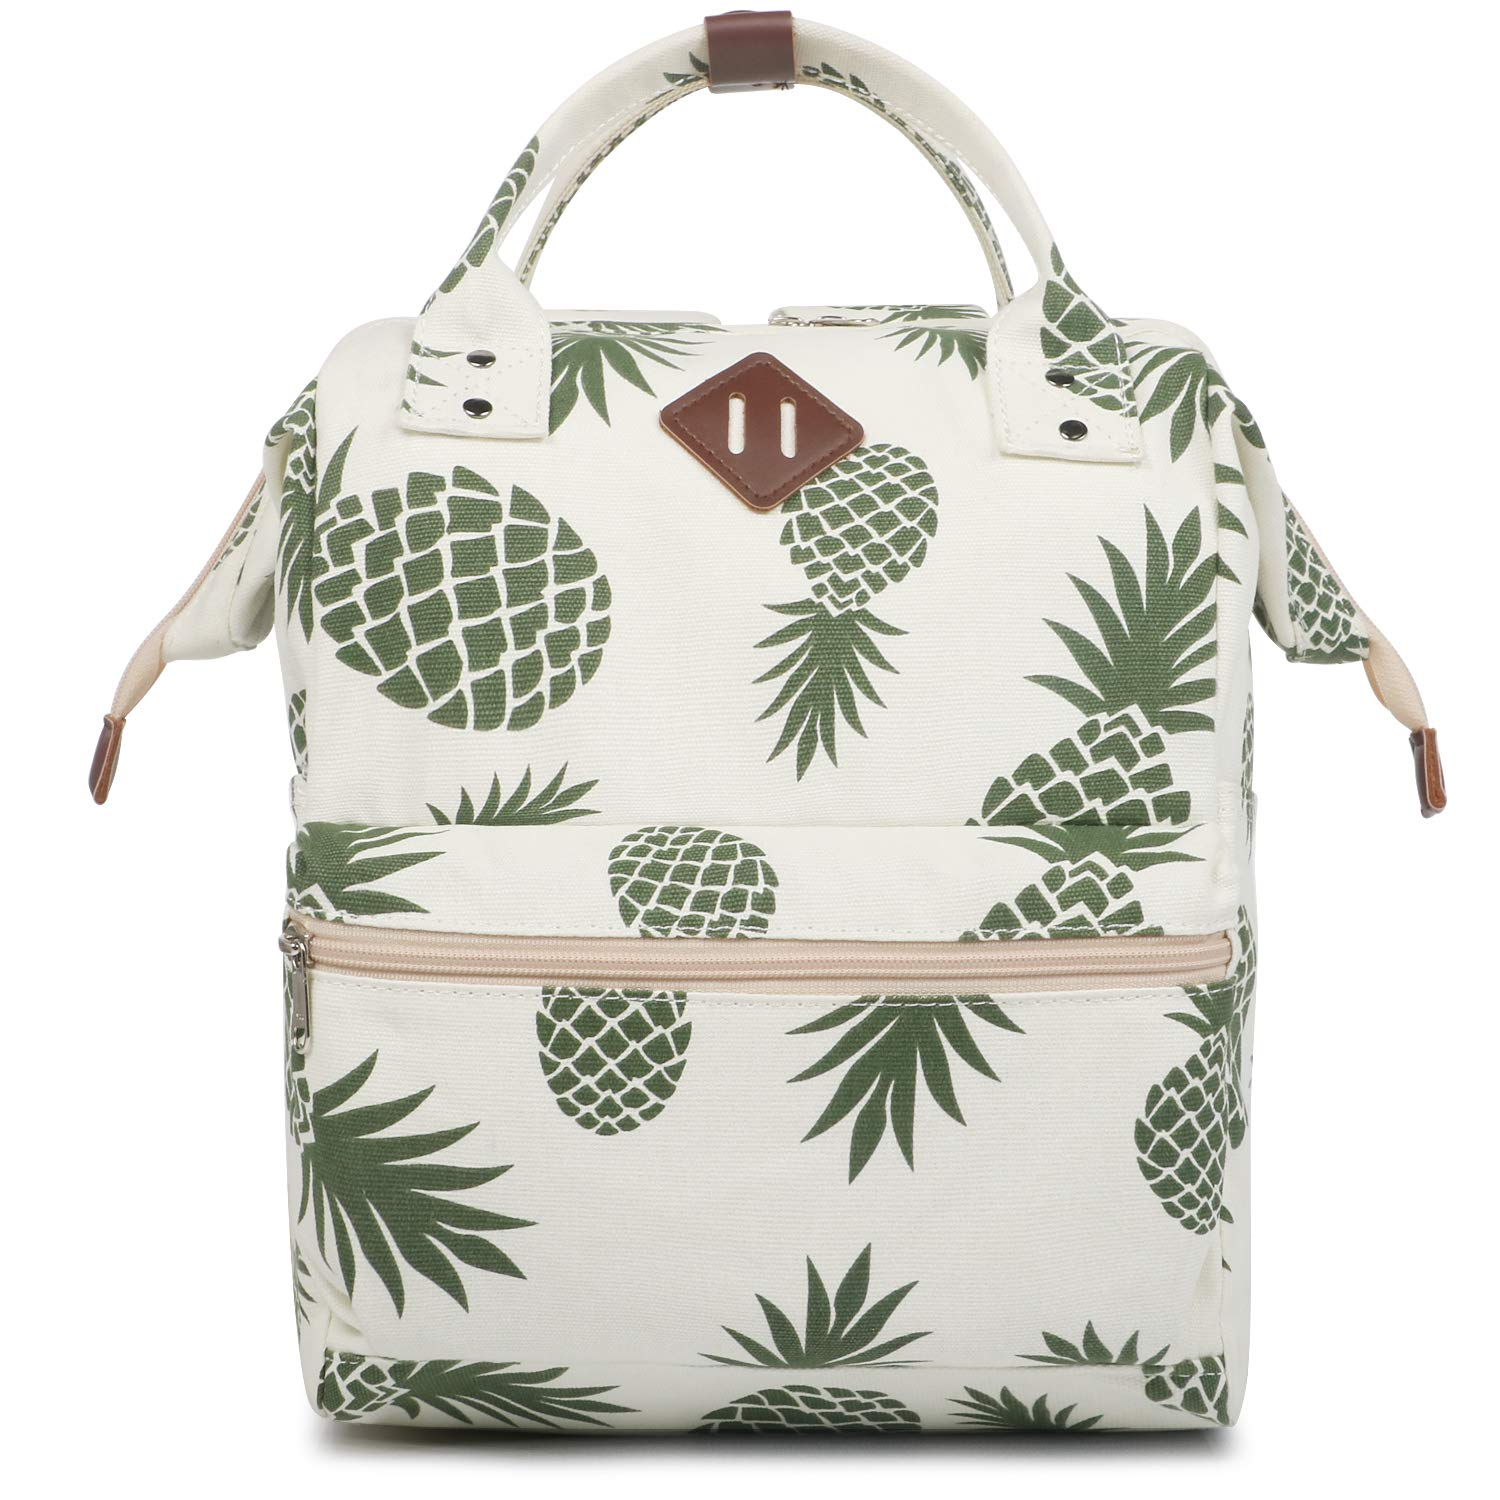 Oflamn Doctor Style Backpacks – Top Open Multipurpose Canvas Casual Daypack Laptop Backpack Travel Bag for Men and Women Pineapple